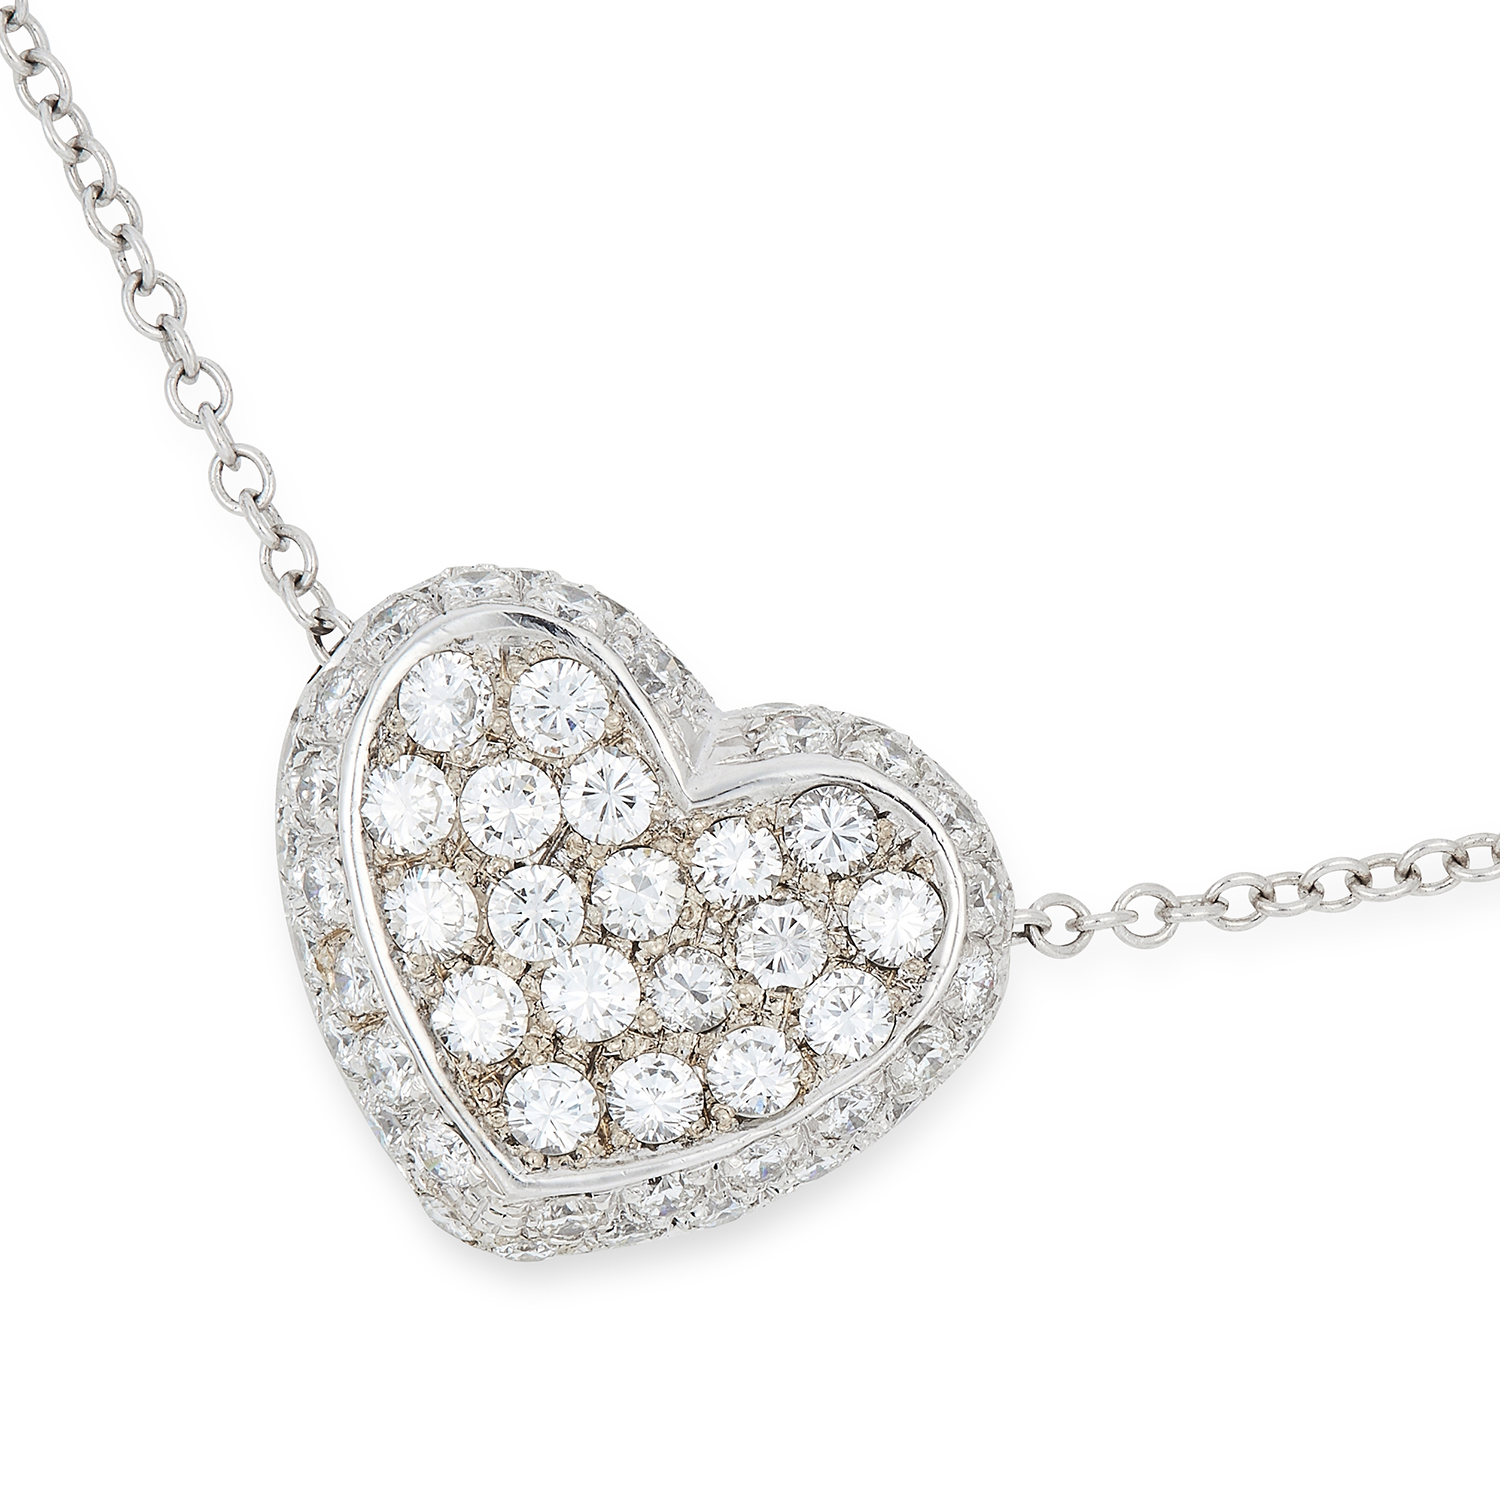 DIAMOND HEART PENDANT AND CHAIN the heart body jewelled with round cut diamonds totalling